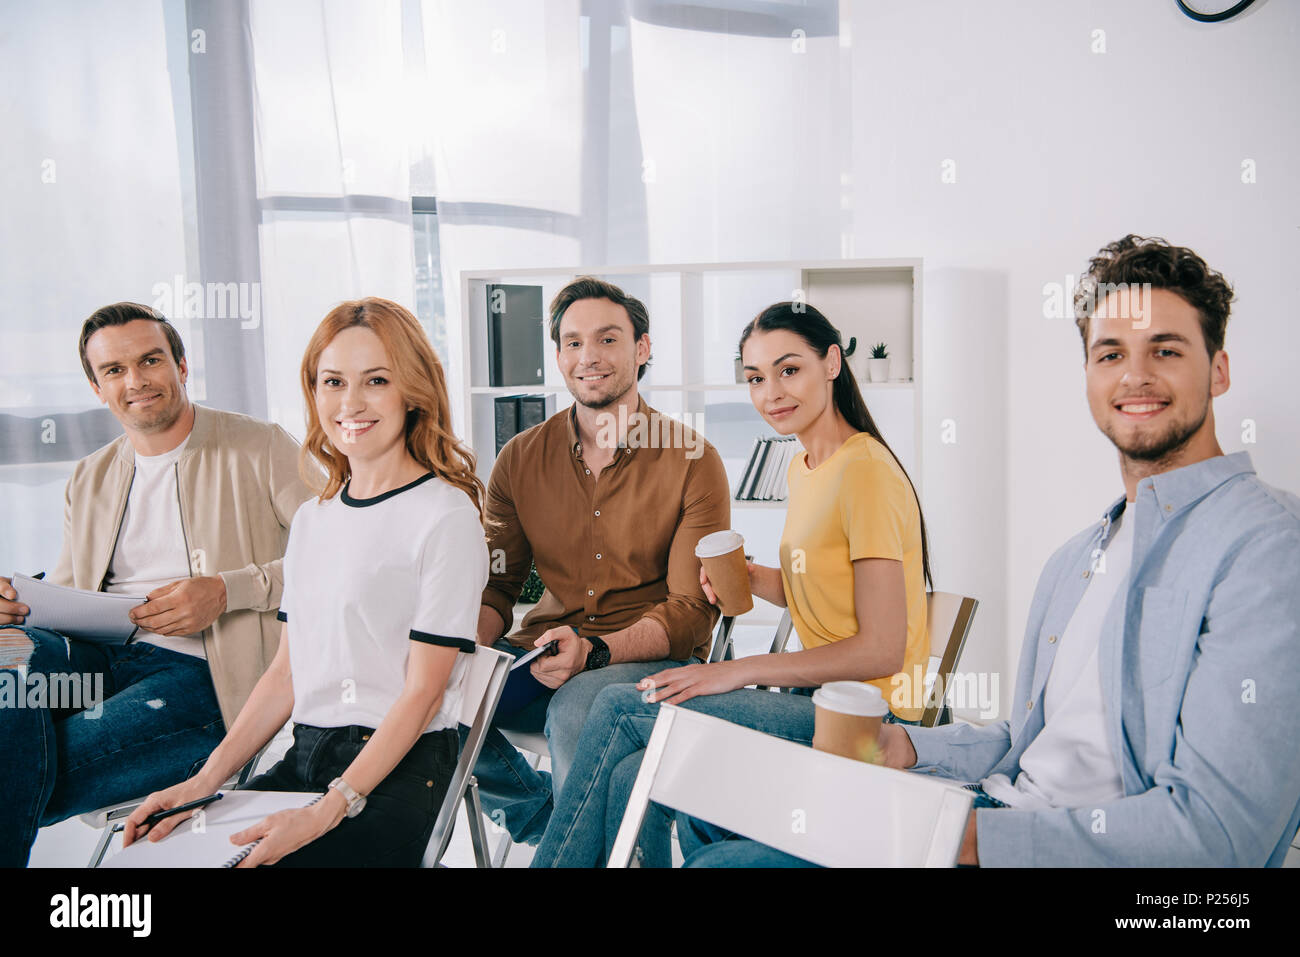 Smiling business people in casual clothing ayant une formation en affaires in office Photo Stock